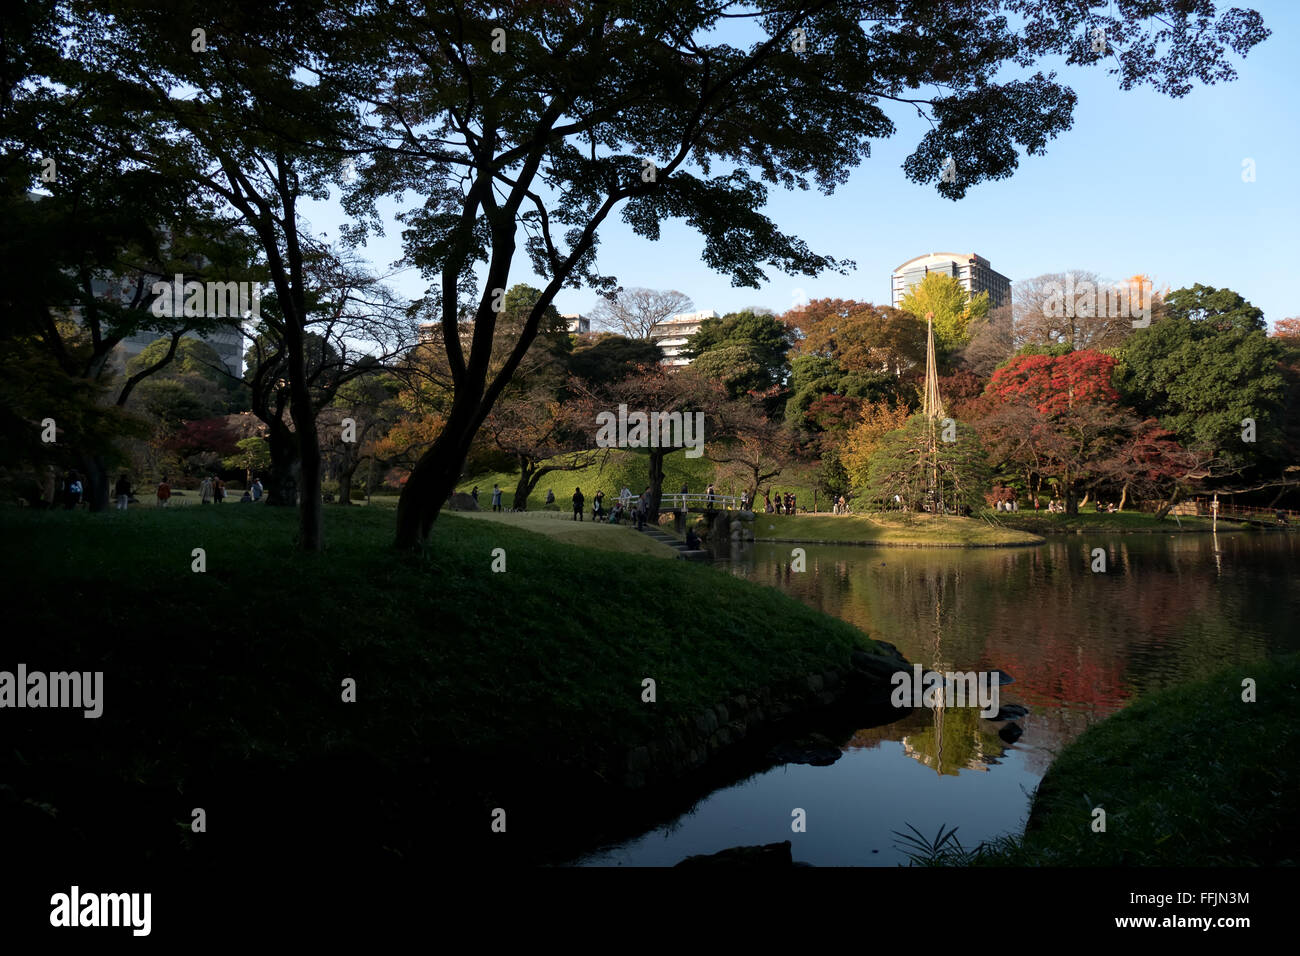 Koishikawa Korakuen Garden, Tokyo, Japan. City park in fall season, autumn foliage on trees. Japanese culture, nature, Stock Photo